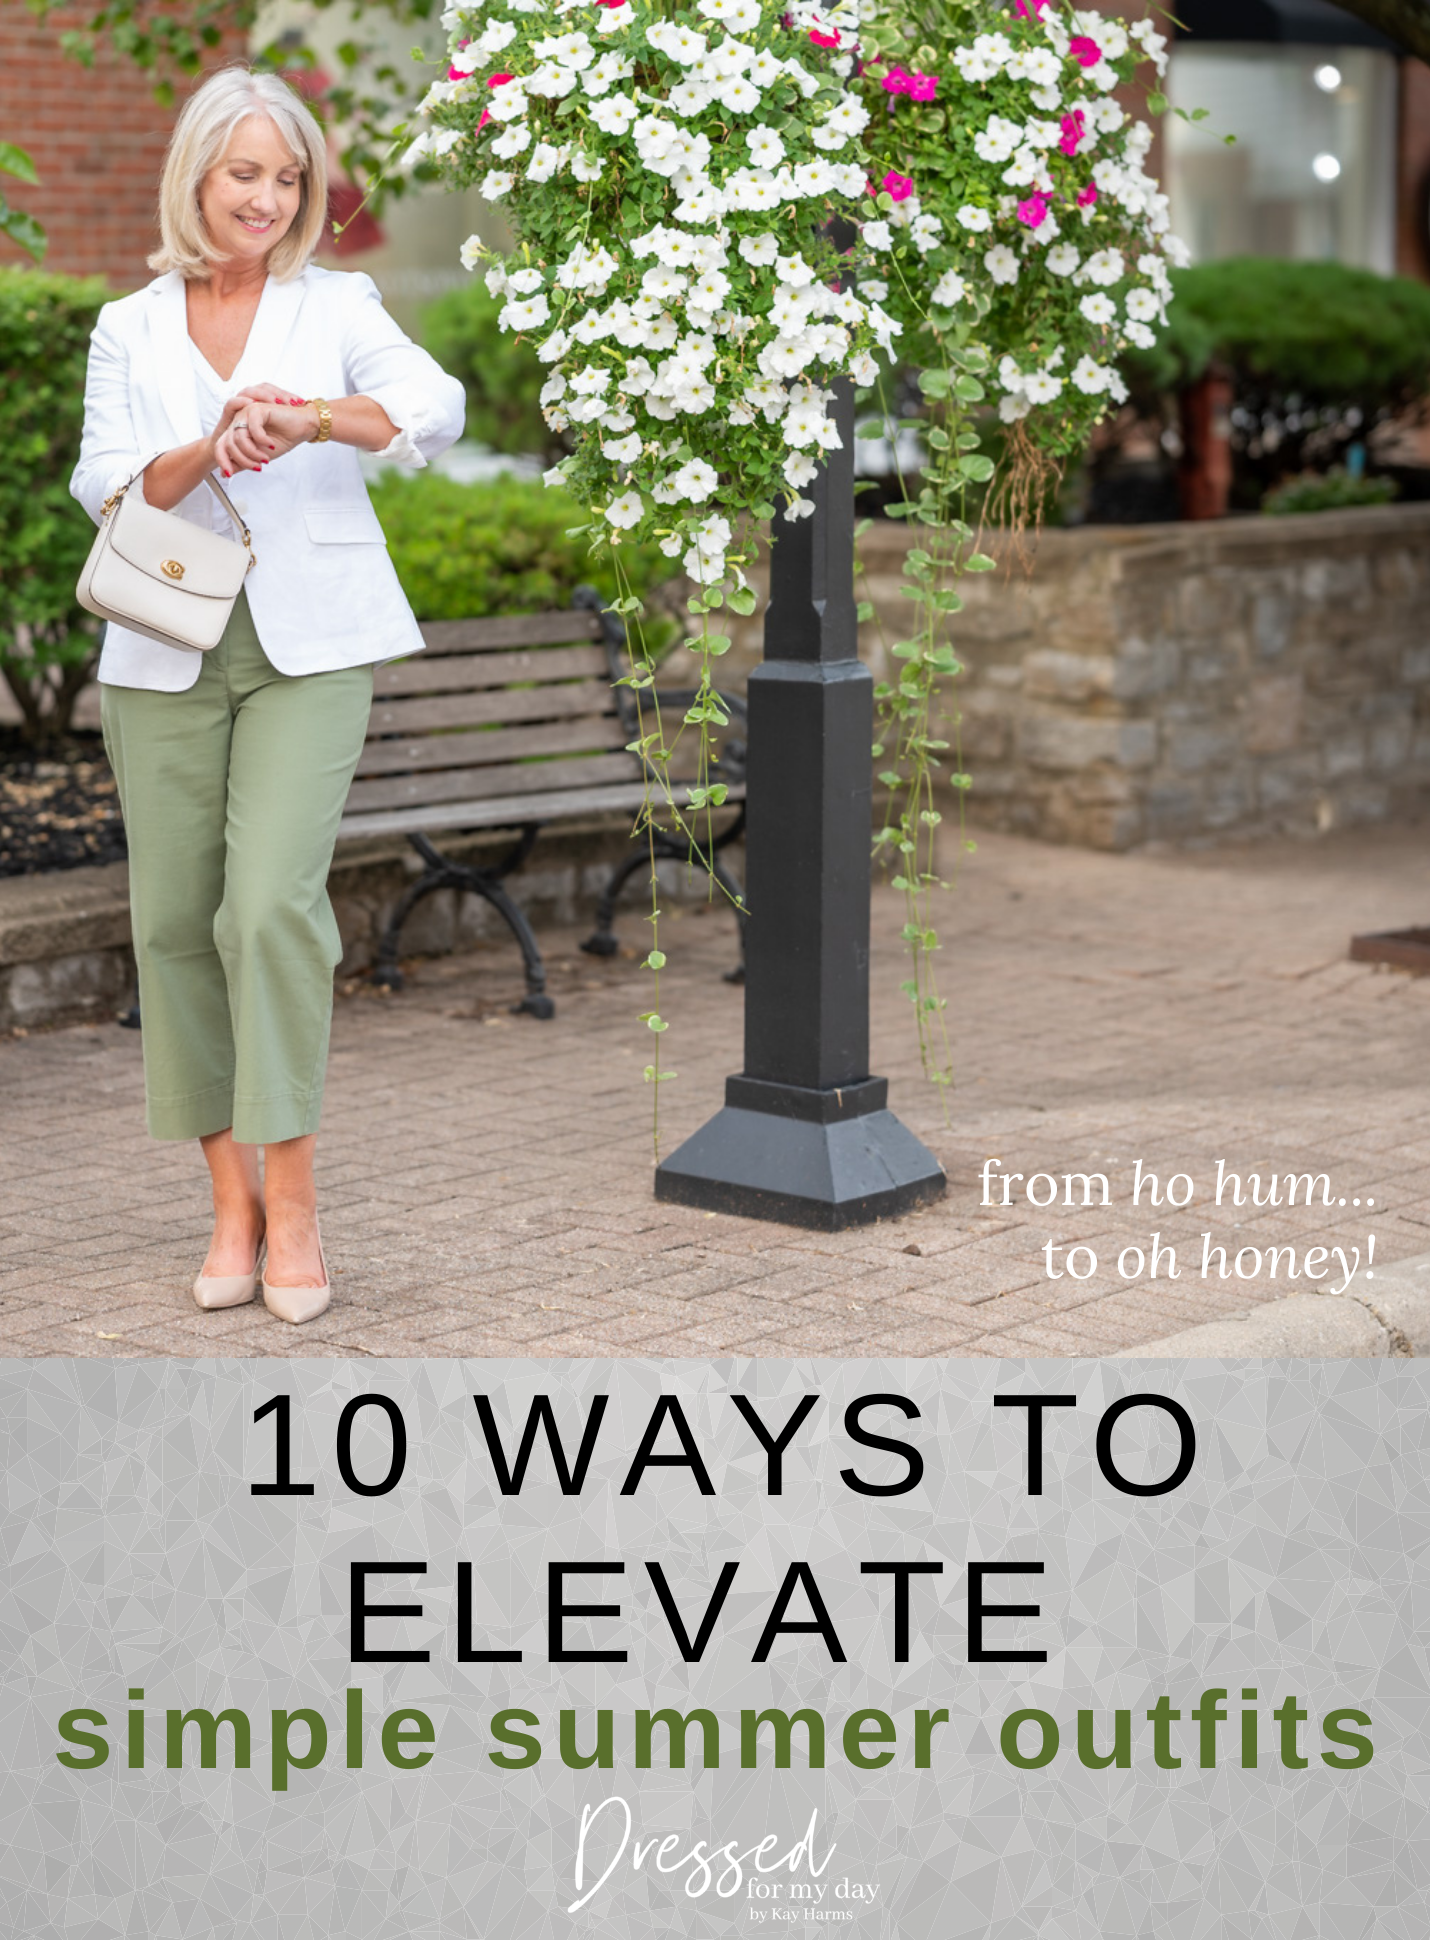 10 Ways to Elevate Simple Summer Outfits